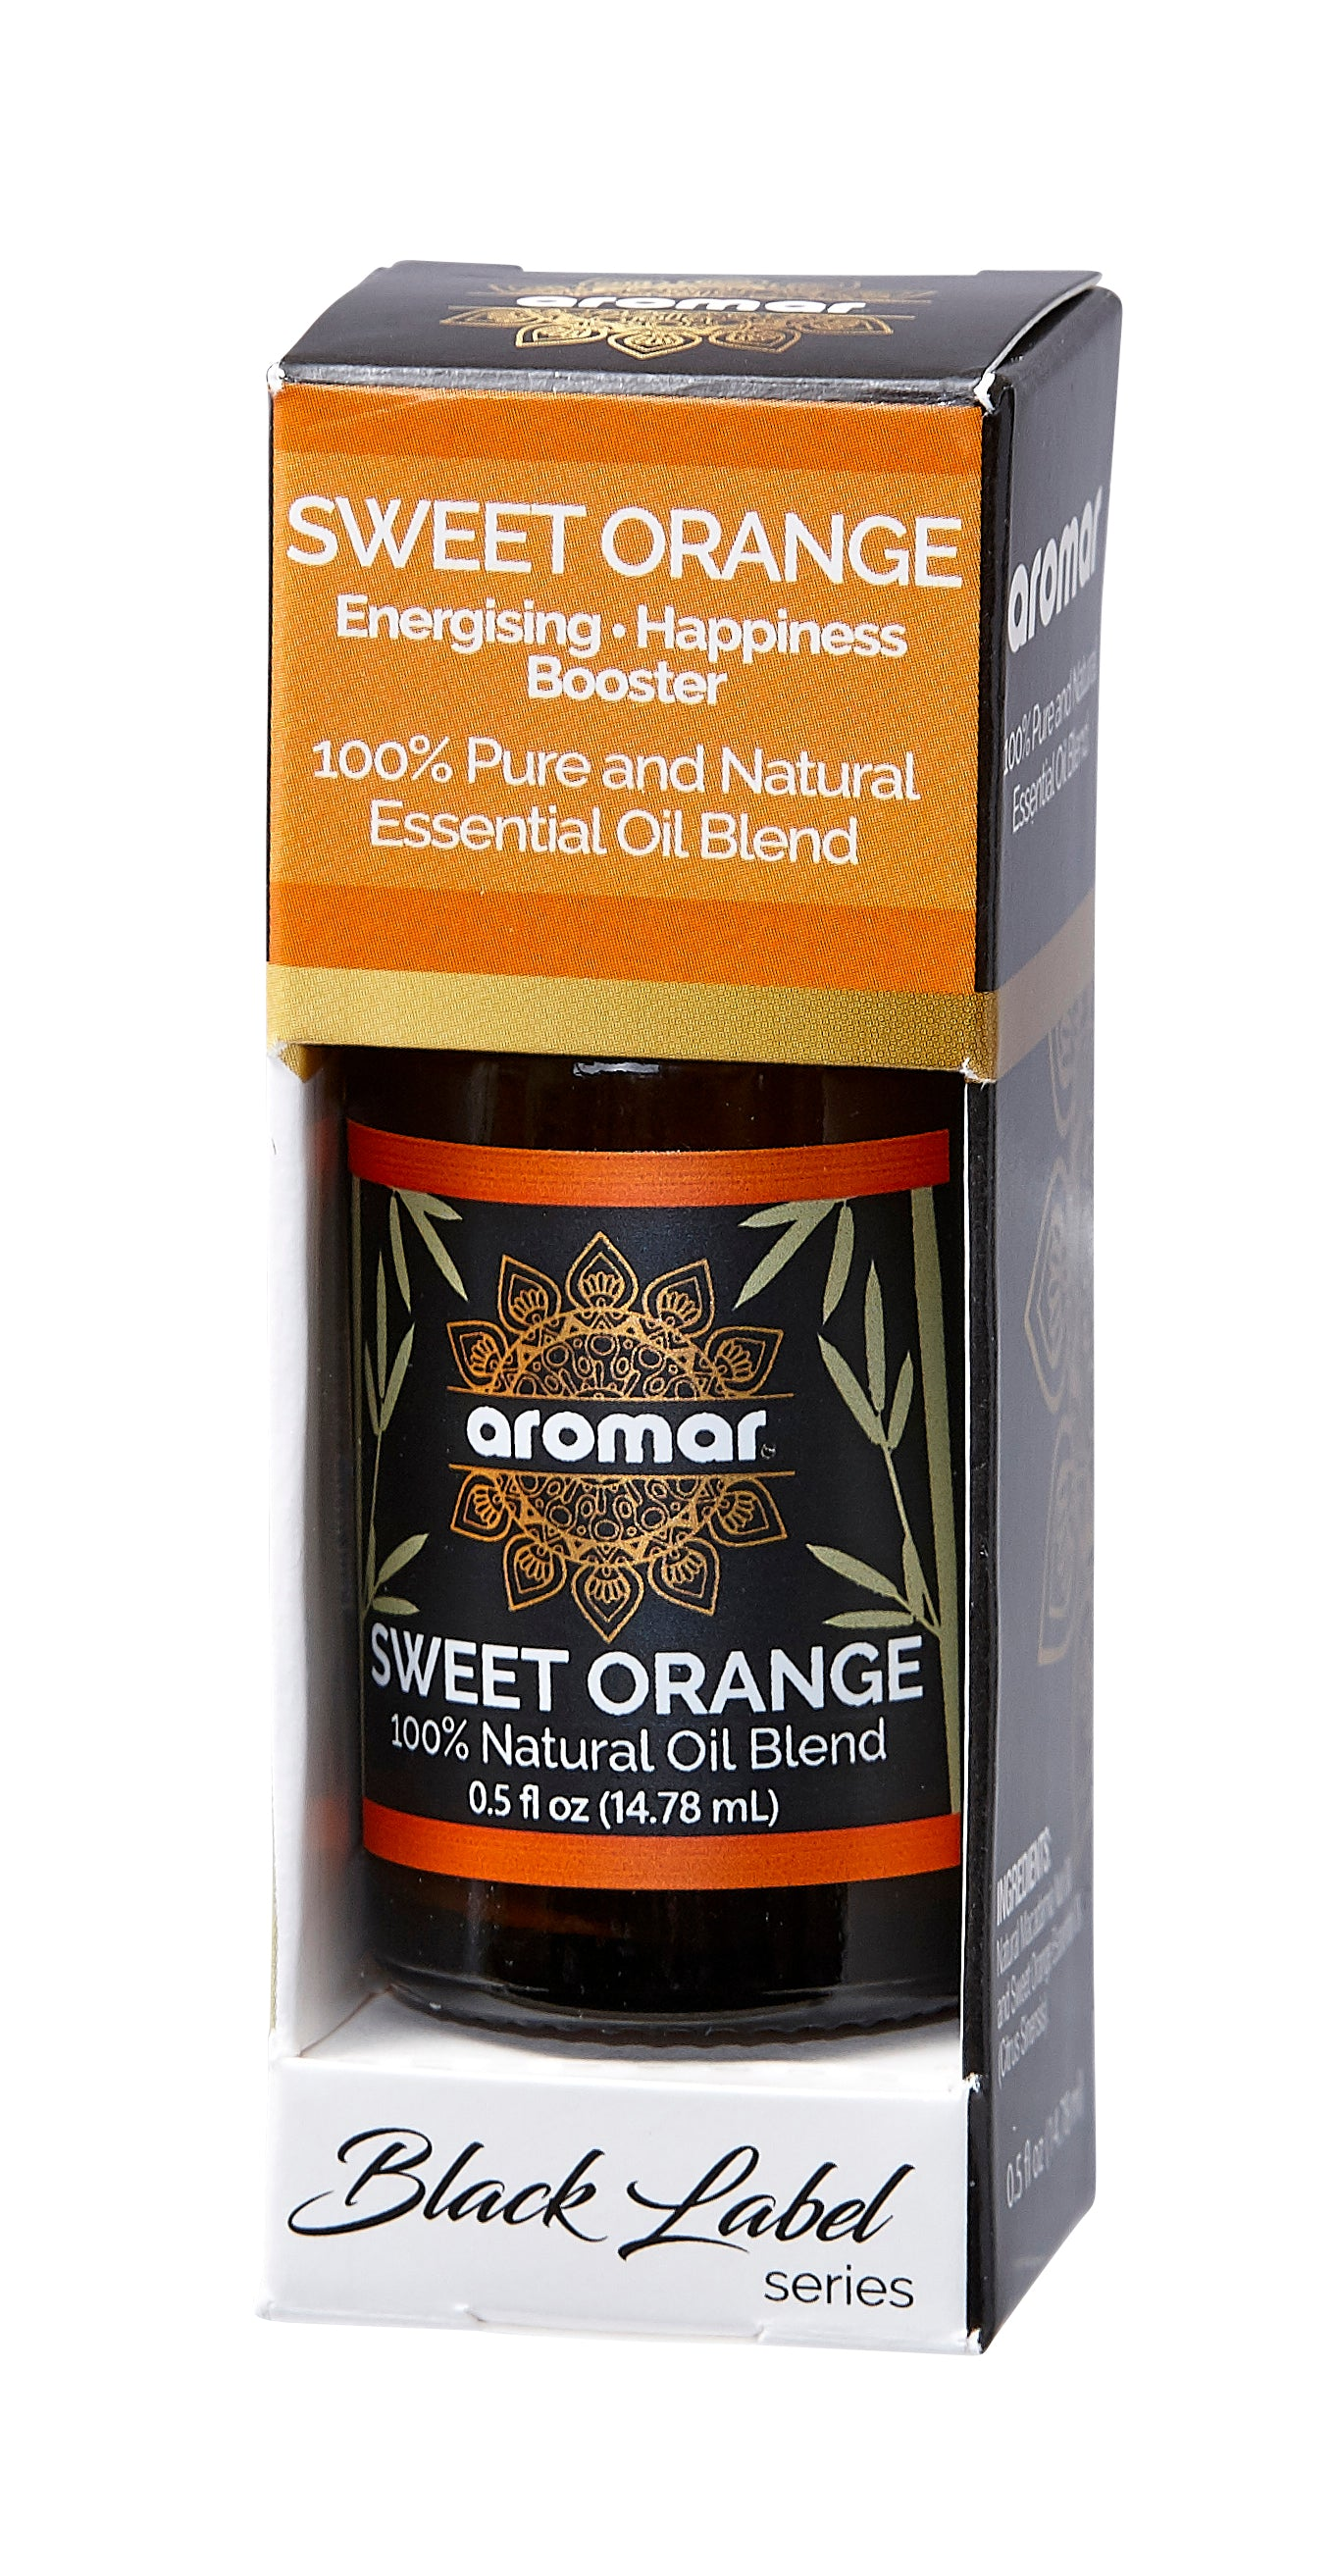 SWEET ORANGE BLACK SERIES ESSENTIALS 0.5 OZ. BOX